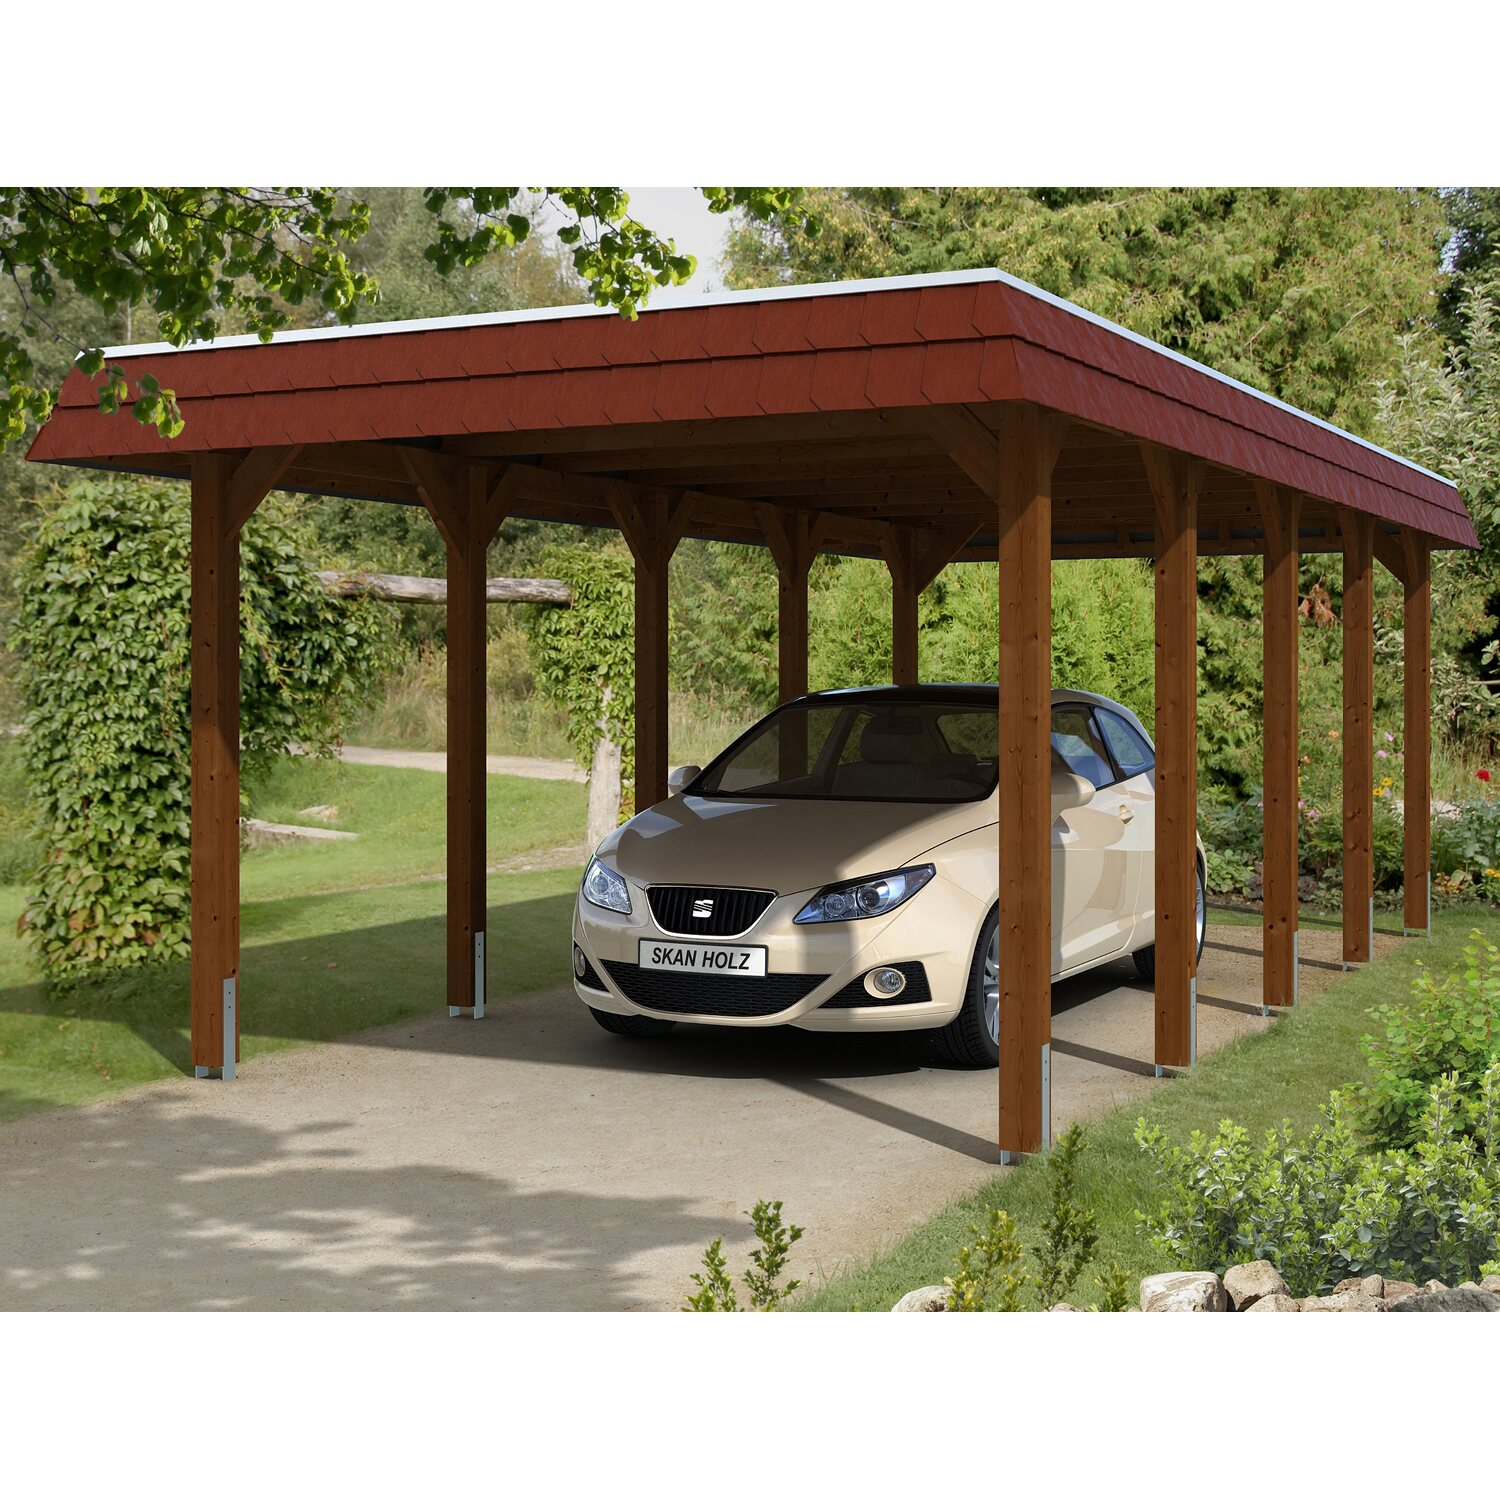 skan holz carport spreewald 345 cm x 741 cm rote blende nussbaum kaufen bei obi. Black Bedroom Furniture Sets. Home Design Ideas